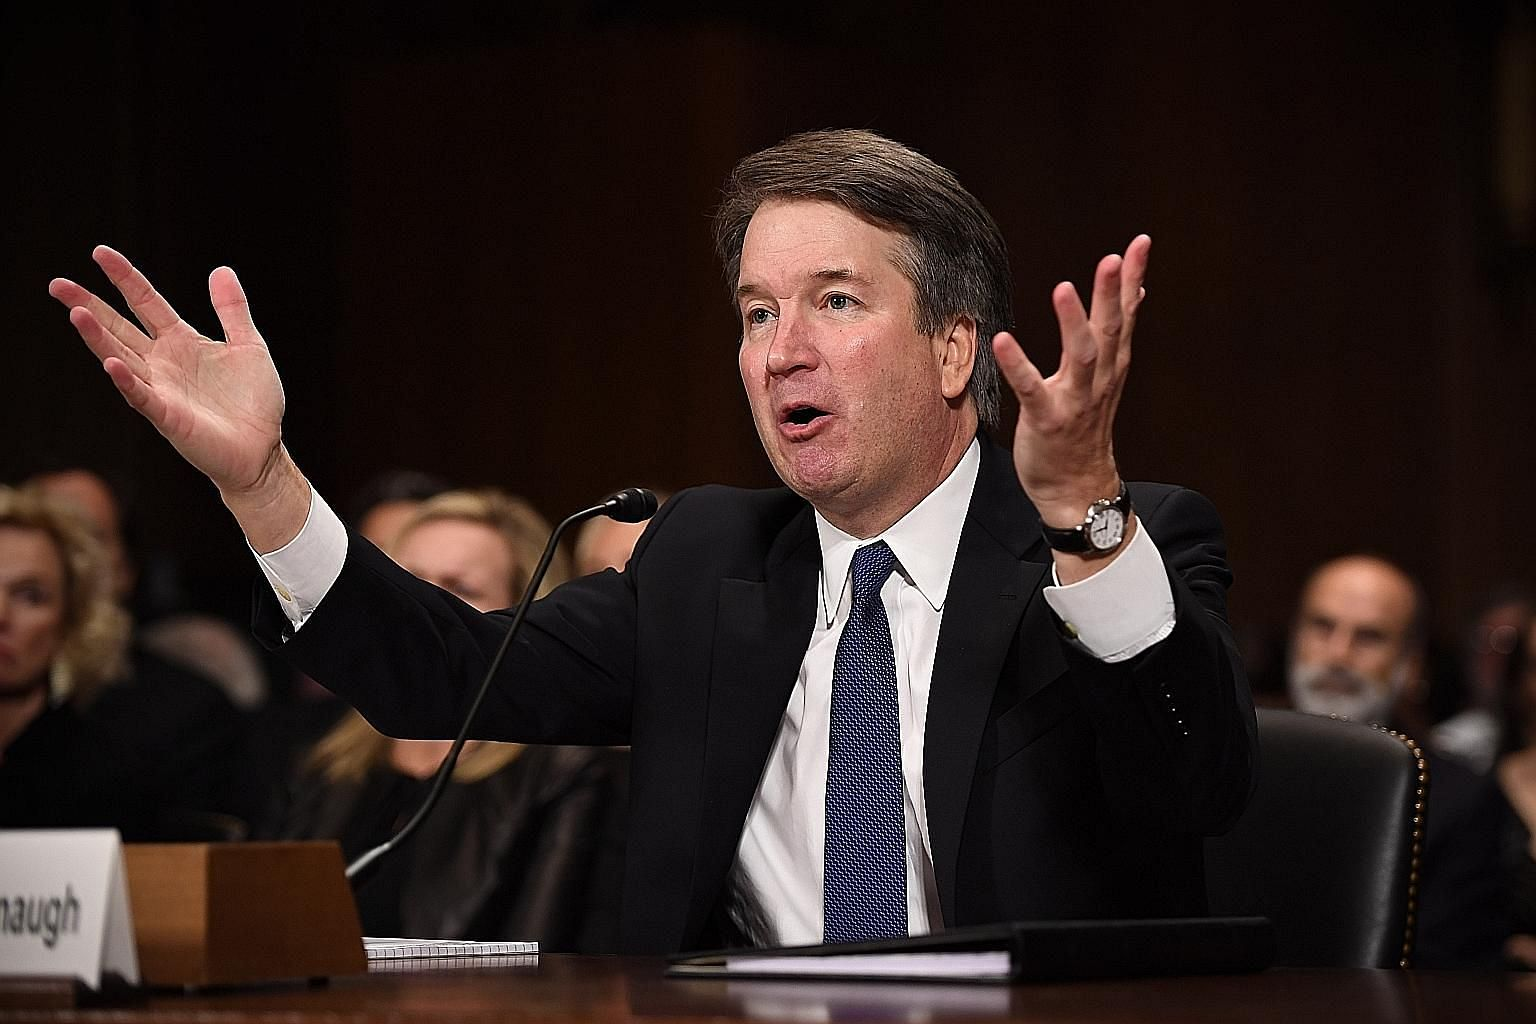 Judge Brett Kavanaugh was accused by research psychologist Christine Blasey Ford of sexually assaulting her in the 1980s.